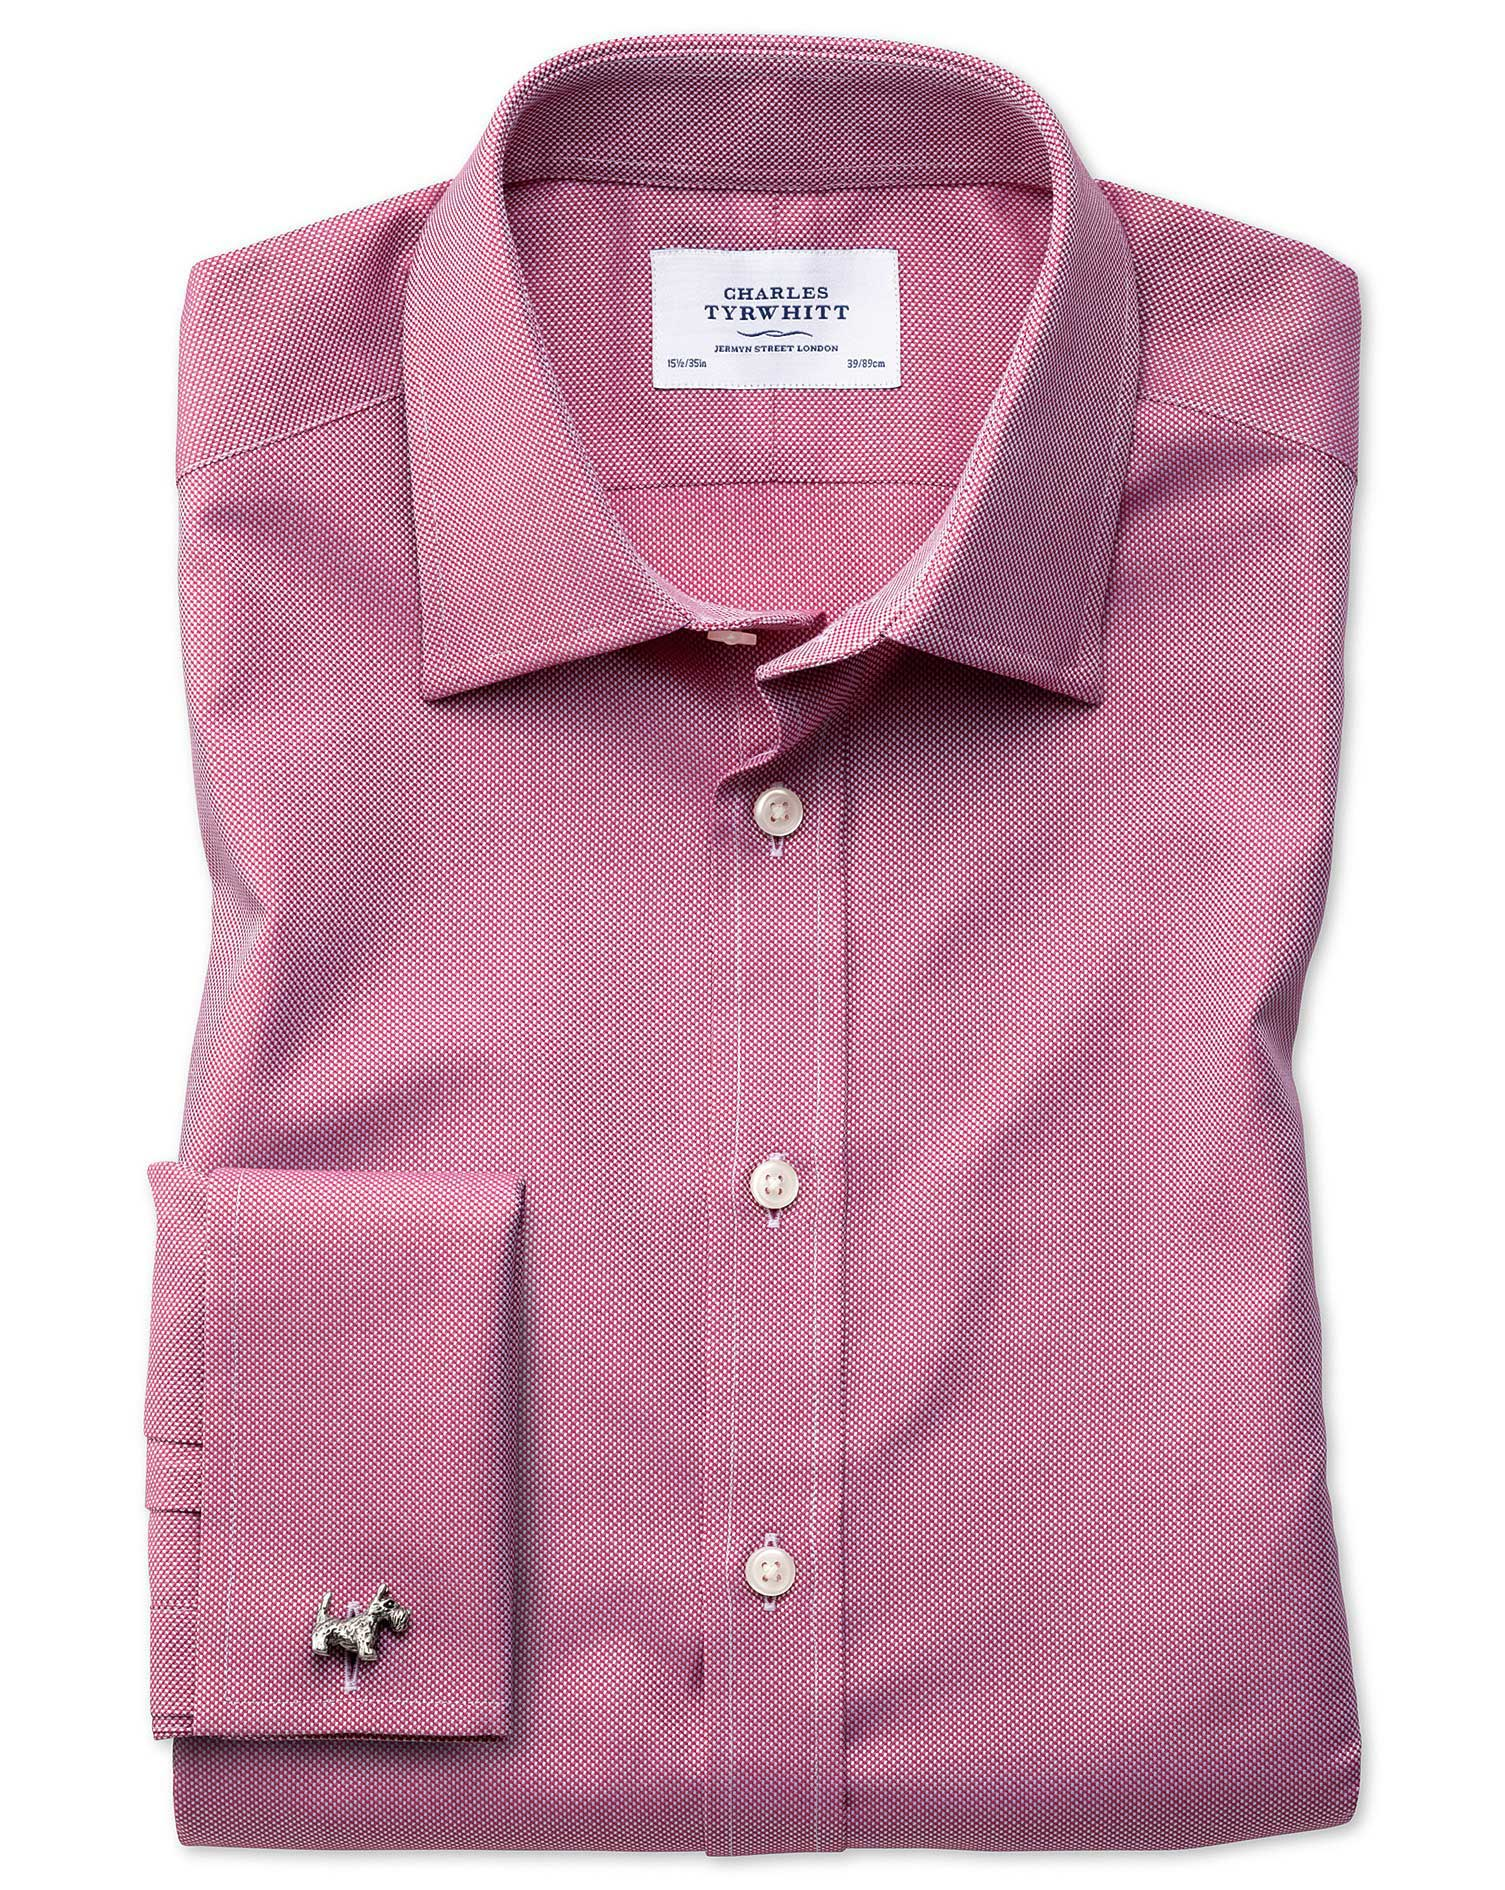 Classic Fit Egyptian Cotton Royal Oxford Magenta Formal Shirt Single Cuff Size 16/33 by Charles Tyrw